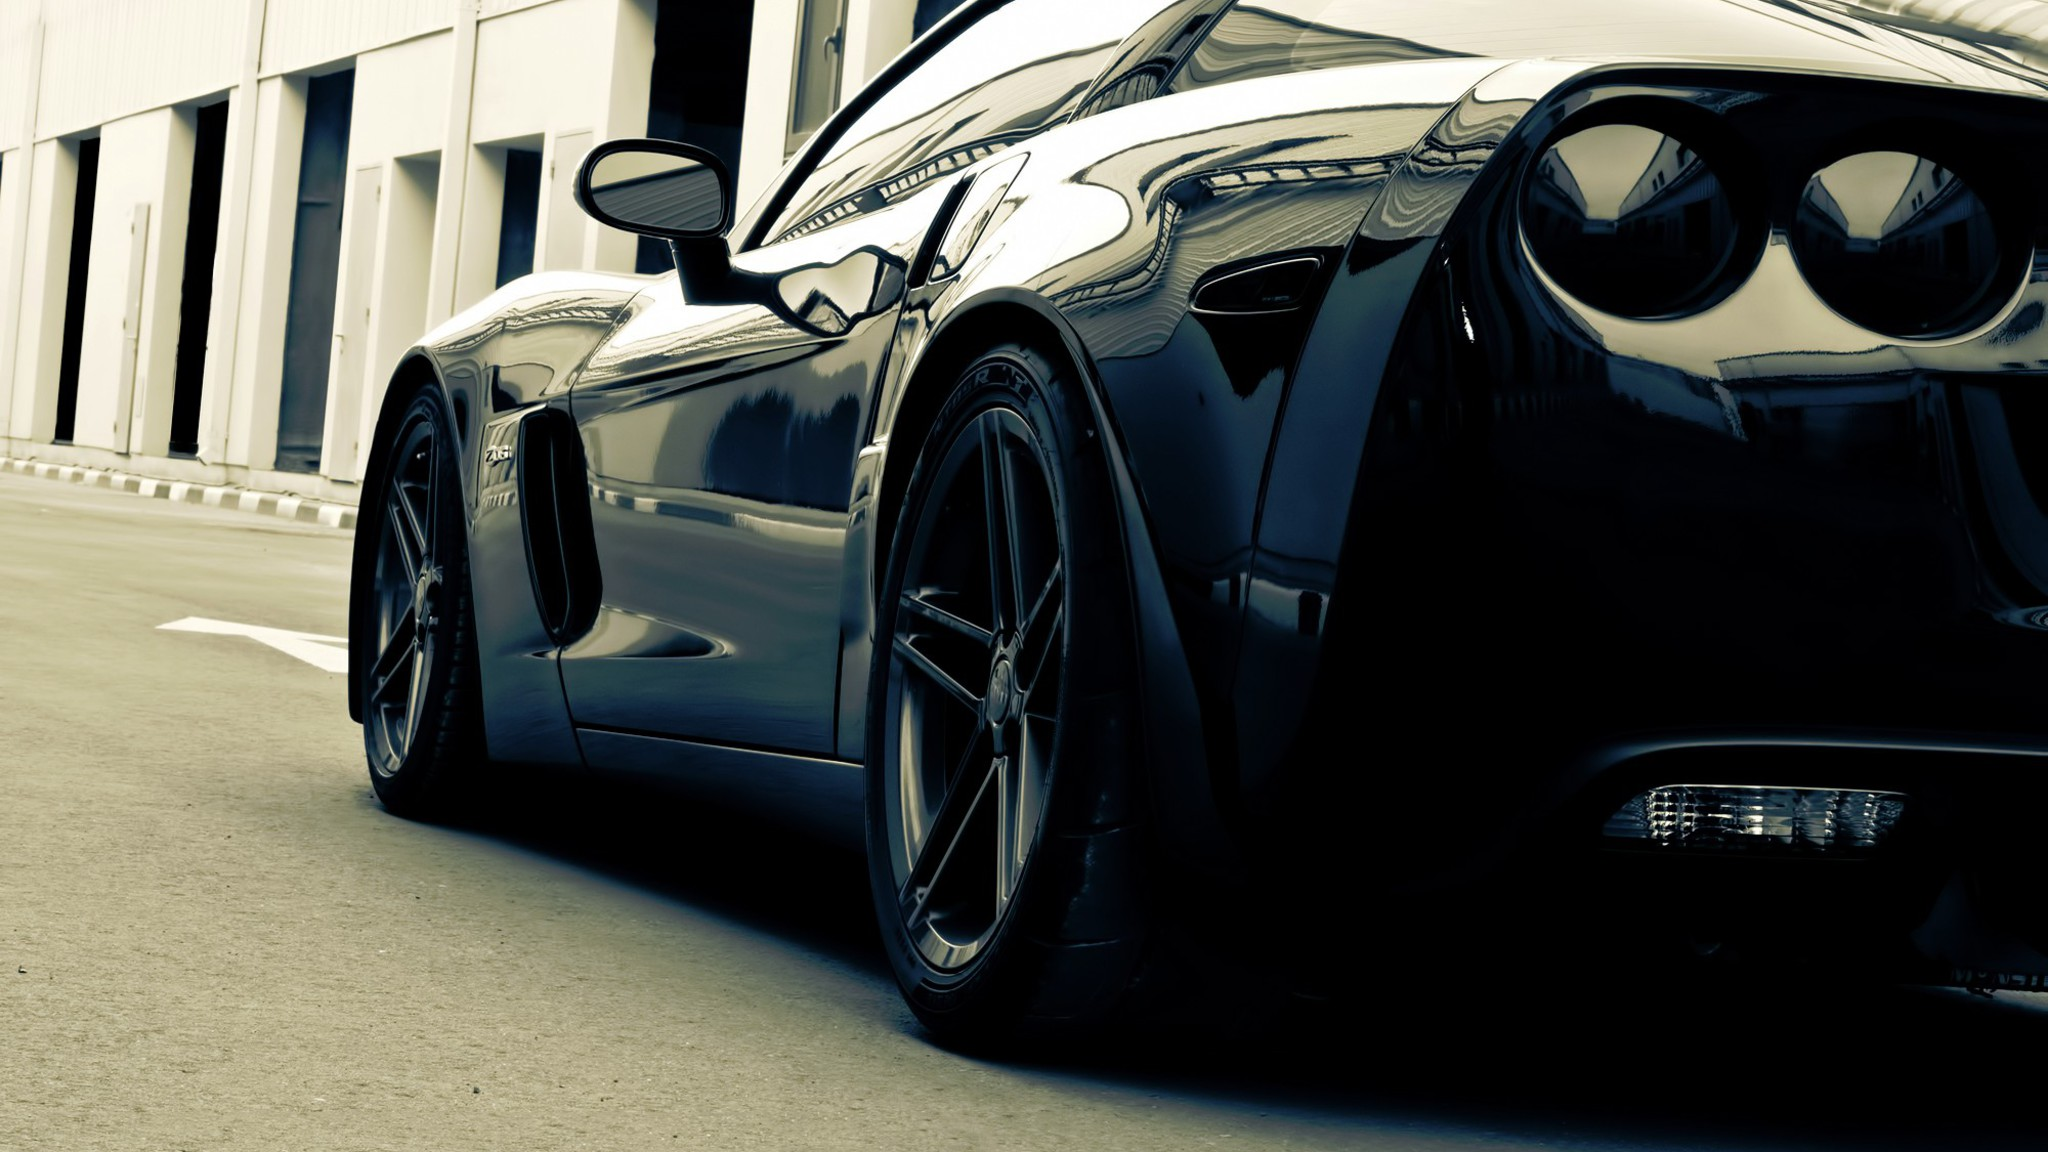 black dark cars - photo #9